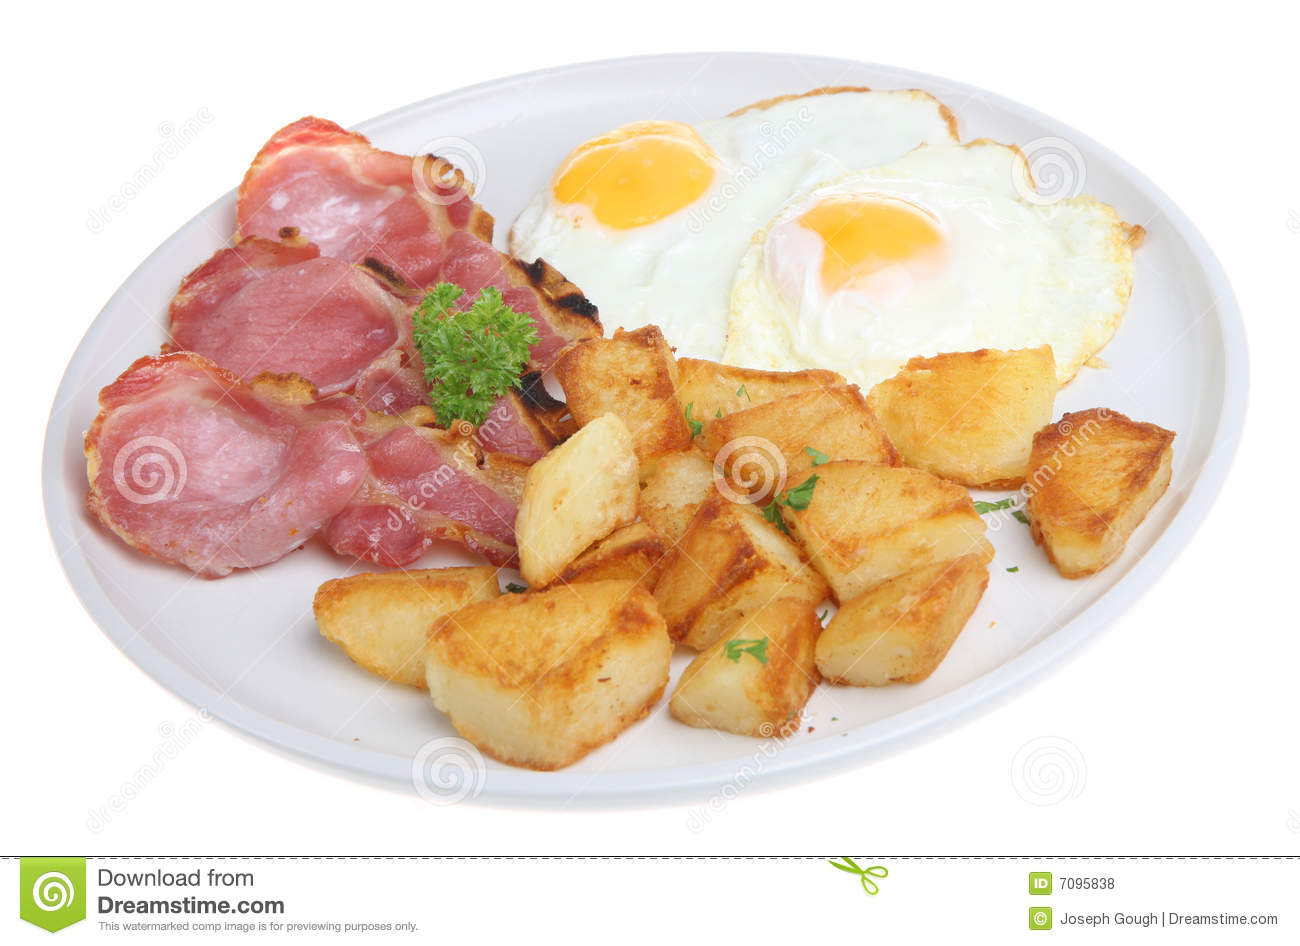 Bacon, Eggs & Fried Potatoes Royalty Free Stock Photos - Image ...